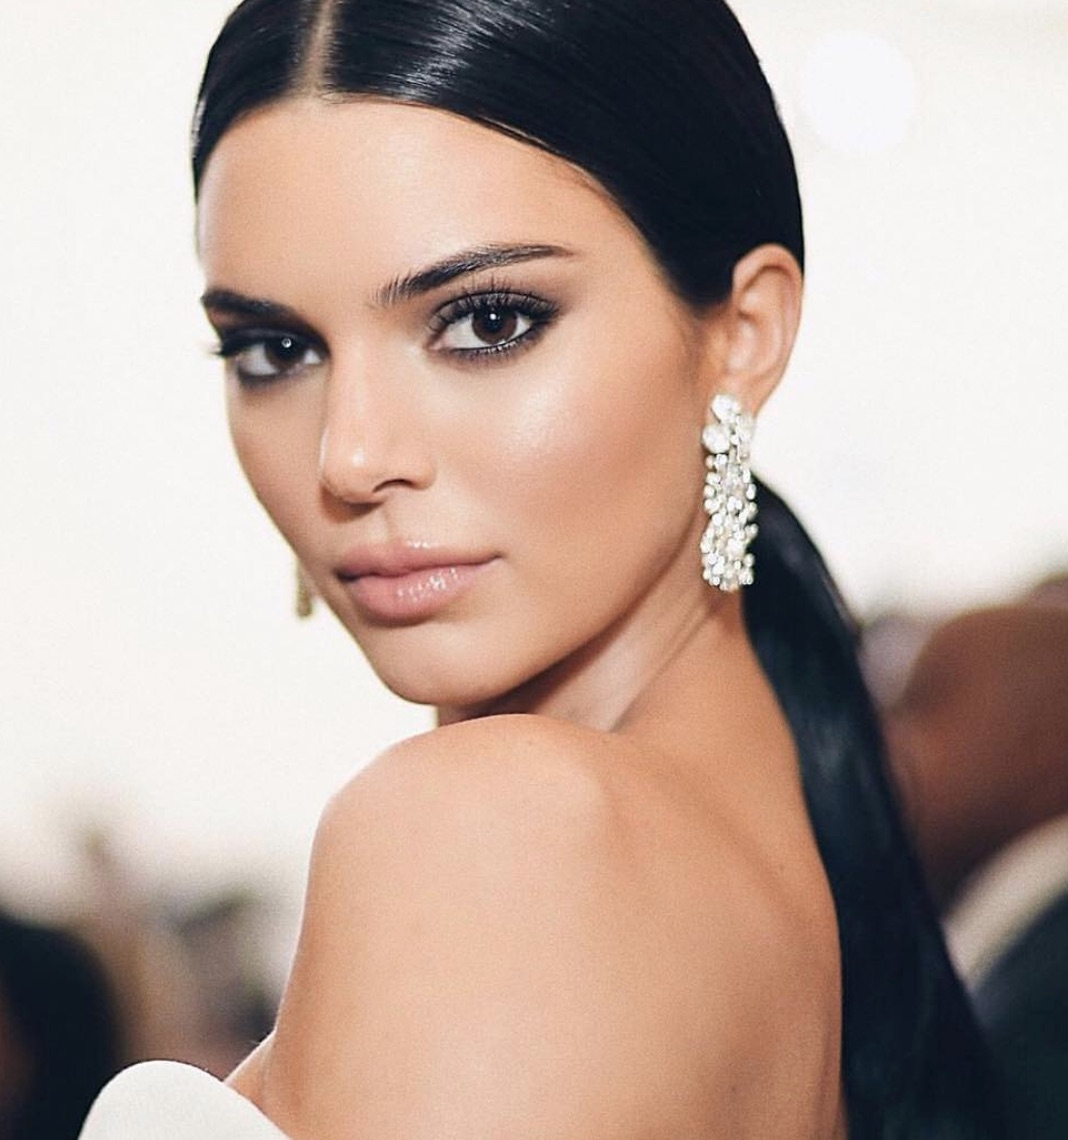 Kendall Jenner wore Paper Flowers earrings to Monday night's Met Gala